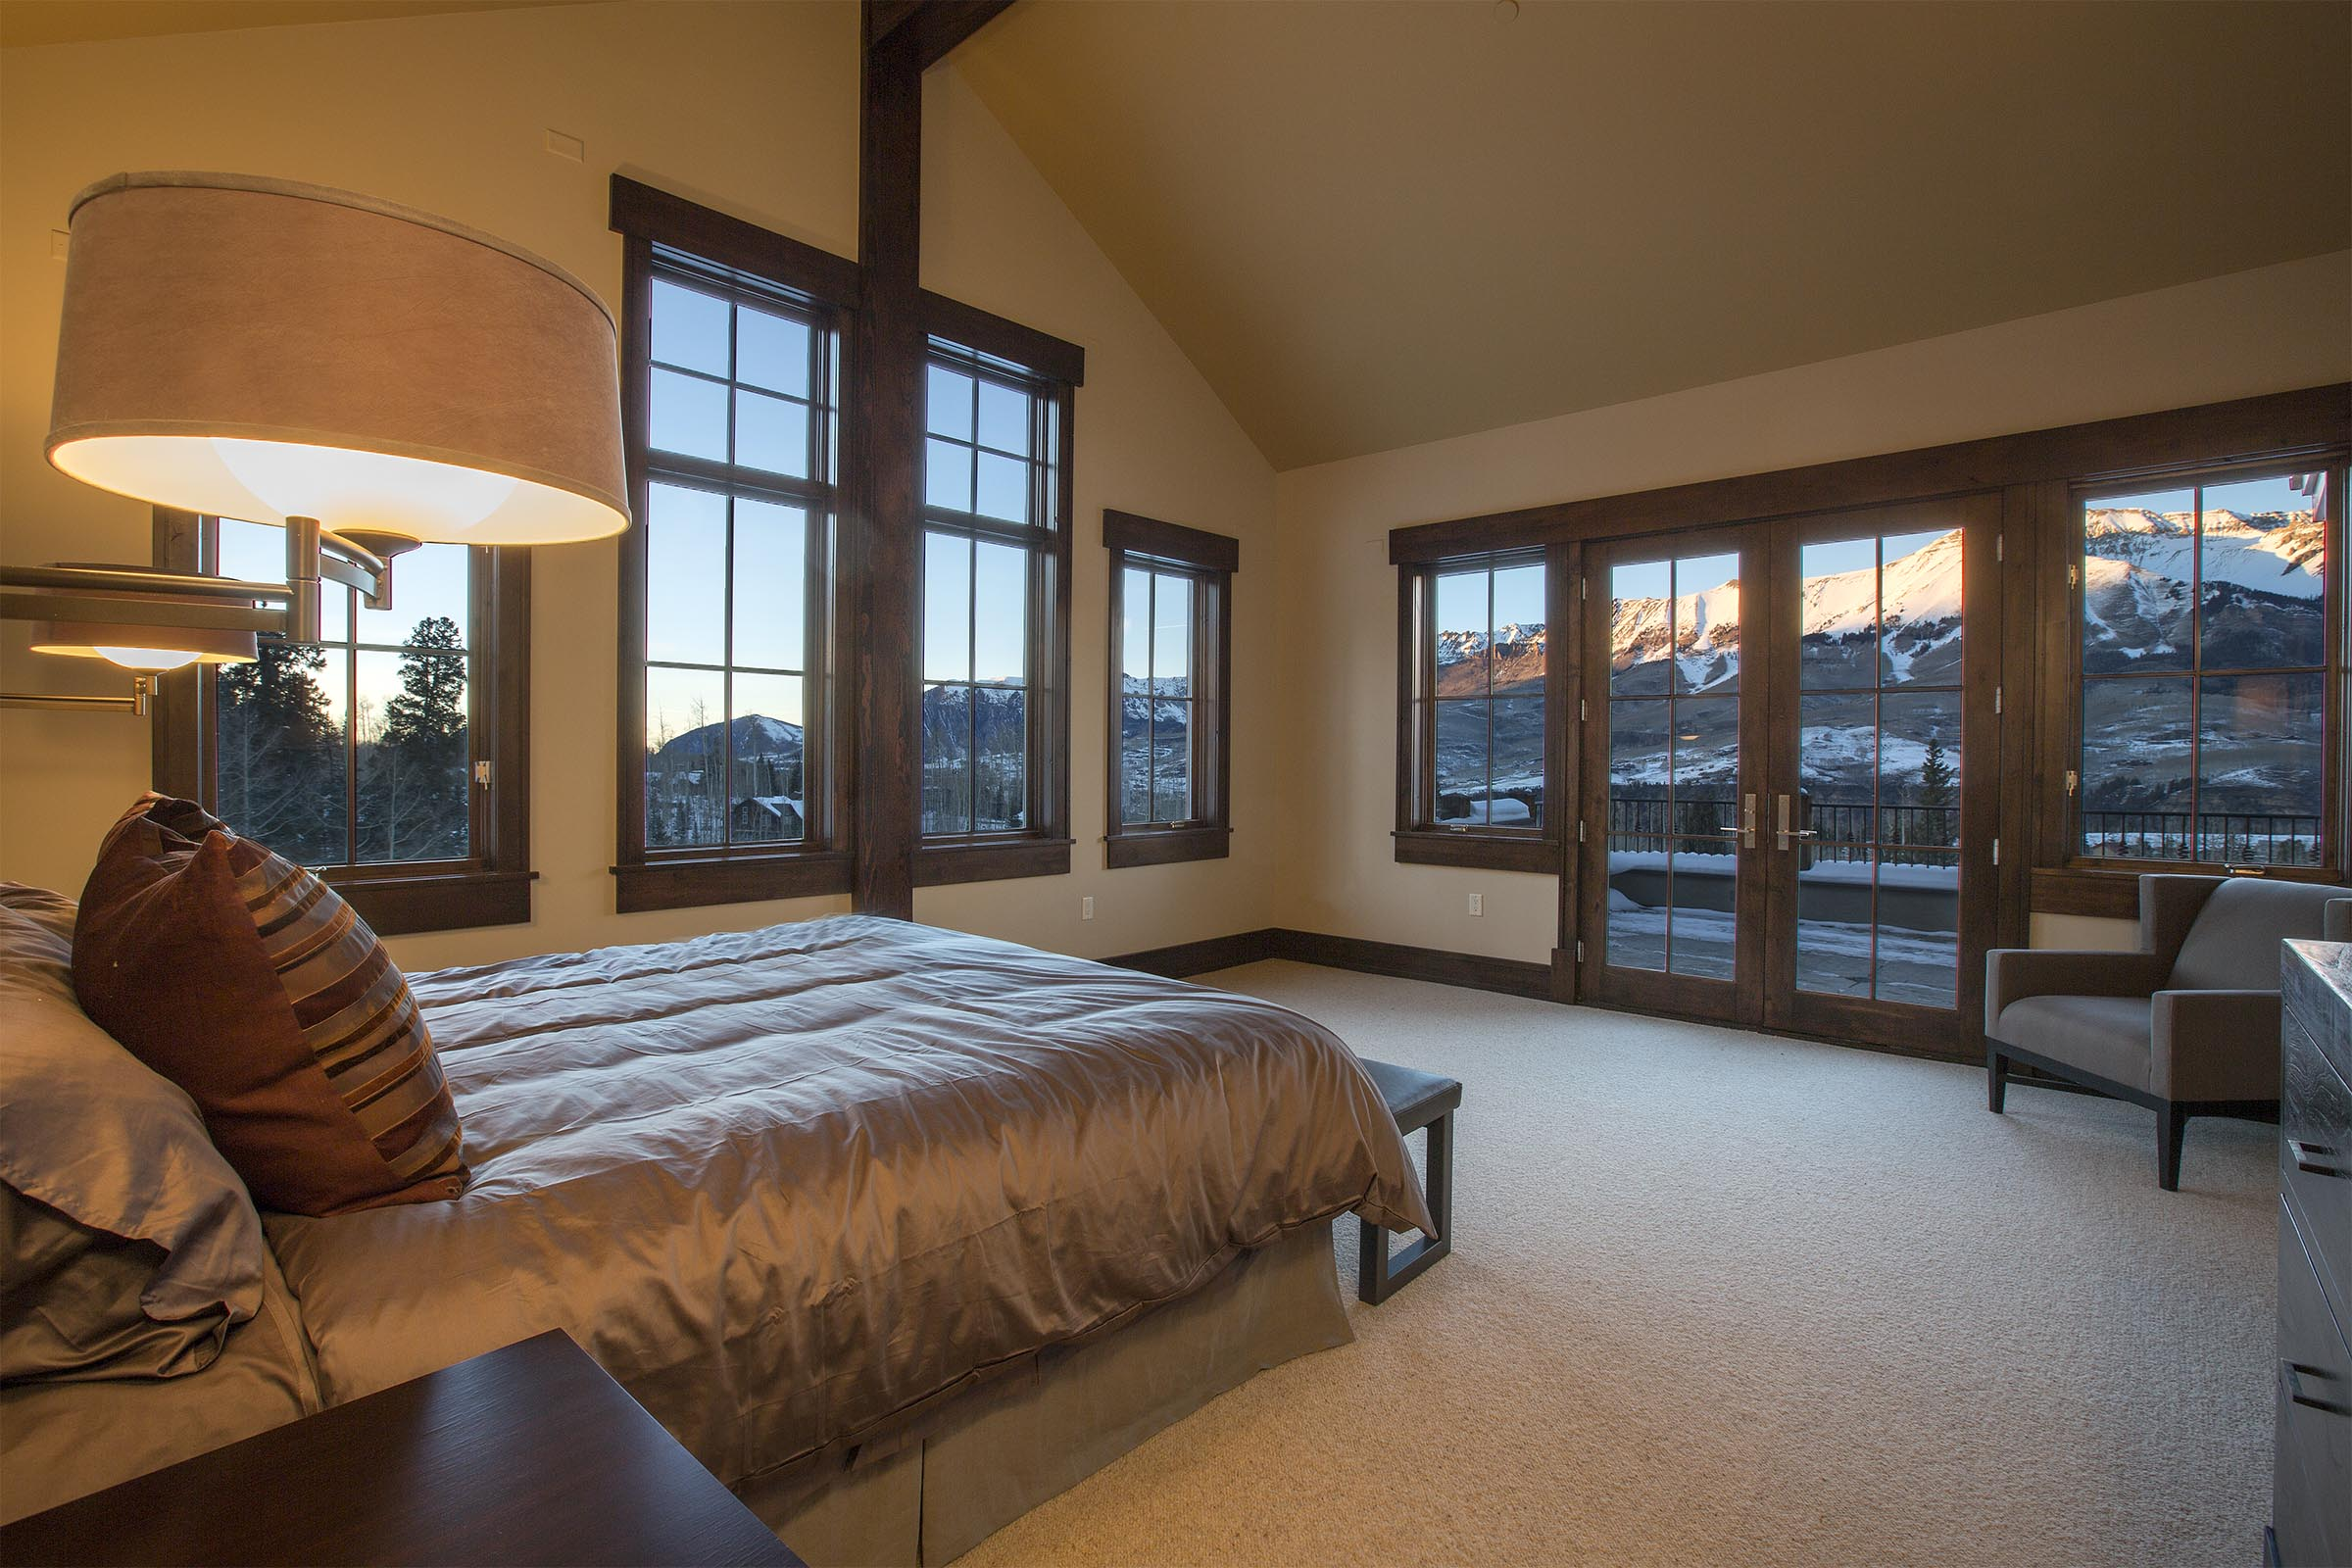 Condominio por un Venta en Elkstone 21, Unit 401 500 Mountain Village Blvd Unit 401 Mountain Village, Telluride, Colorado, 81435 Estados Unidos